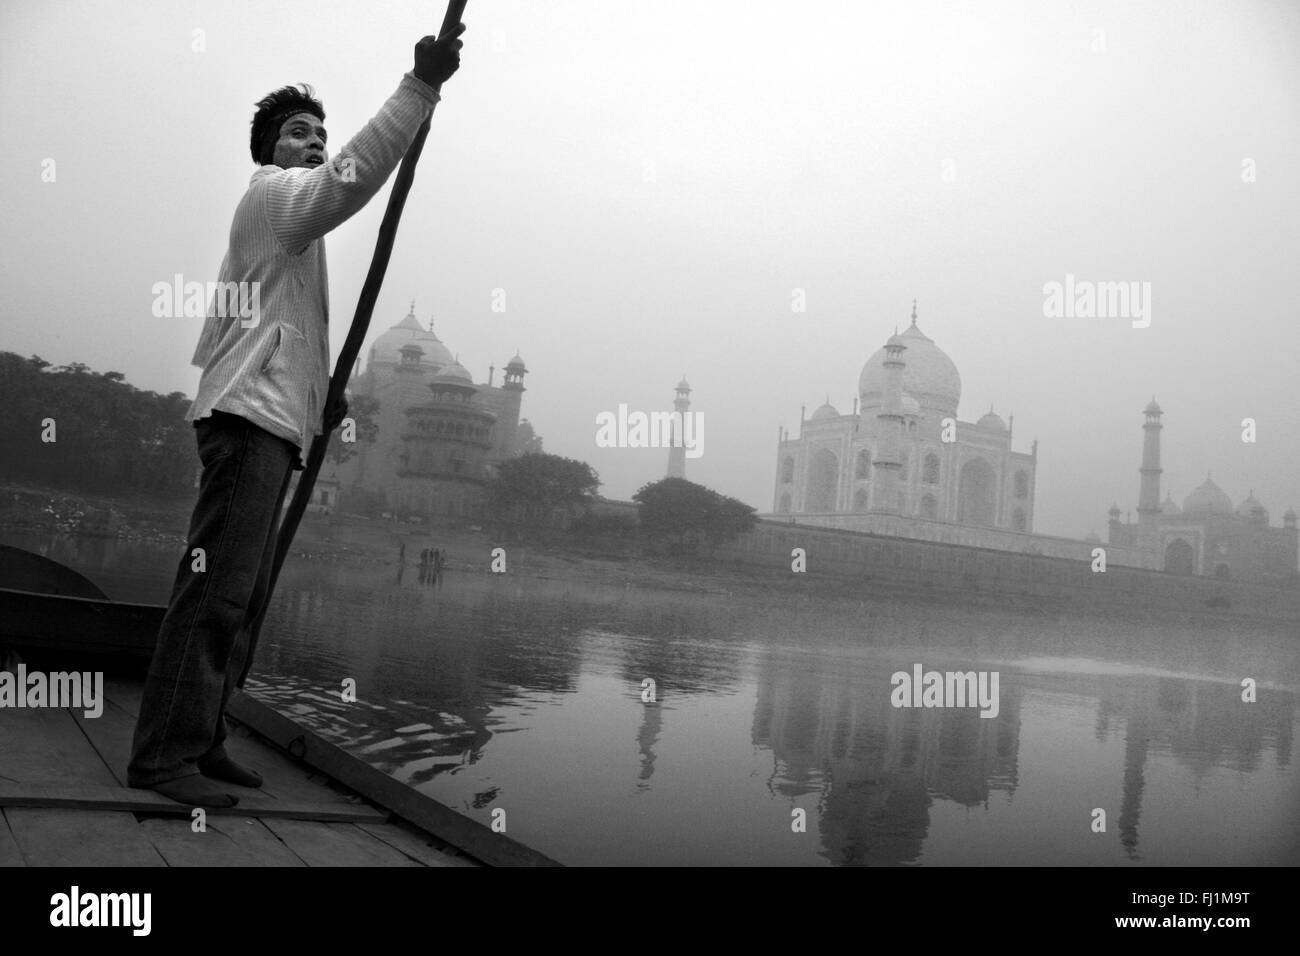 Man on boat on Yamuna river, with Taj Mahal, in the early morning, Agra India - Stock Image